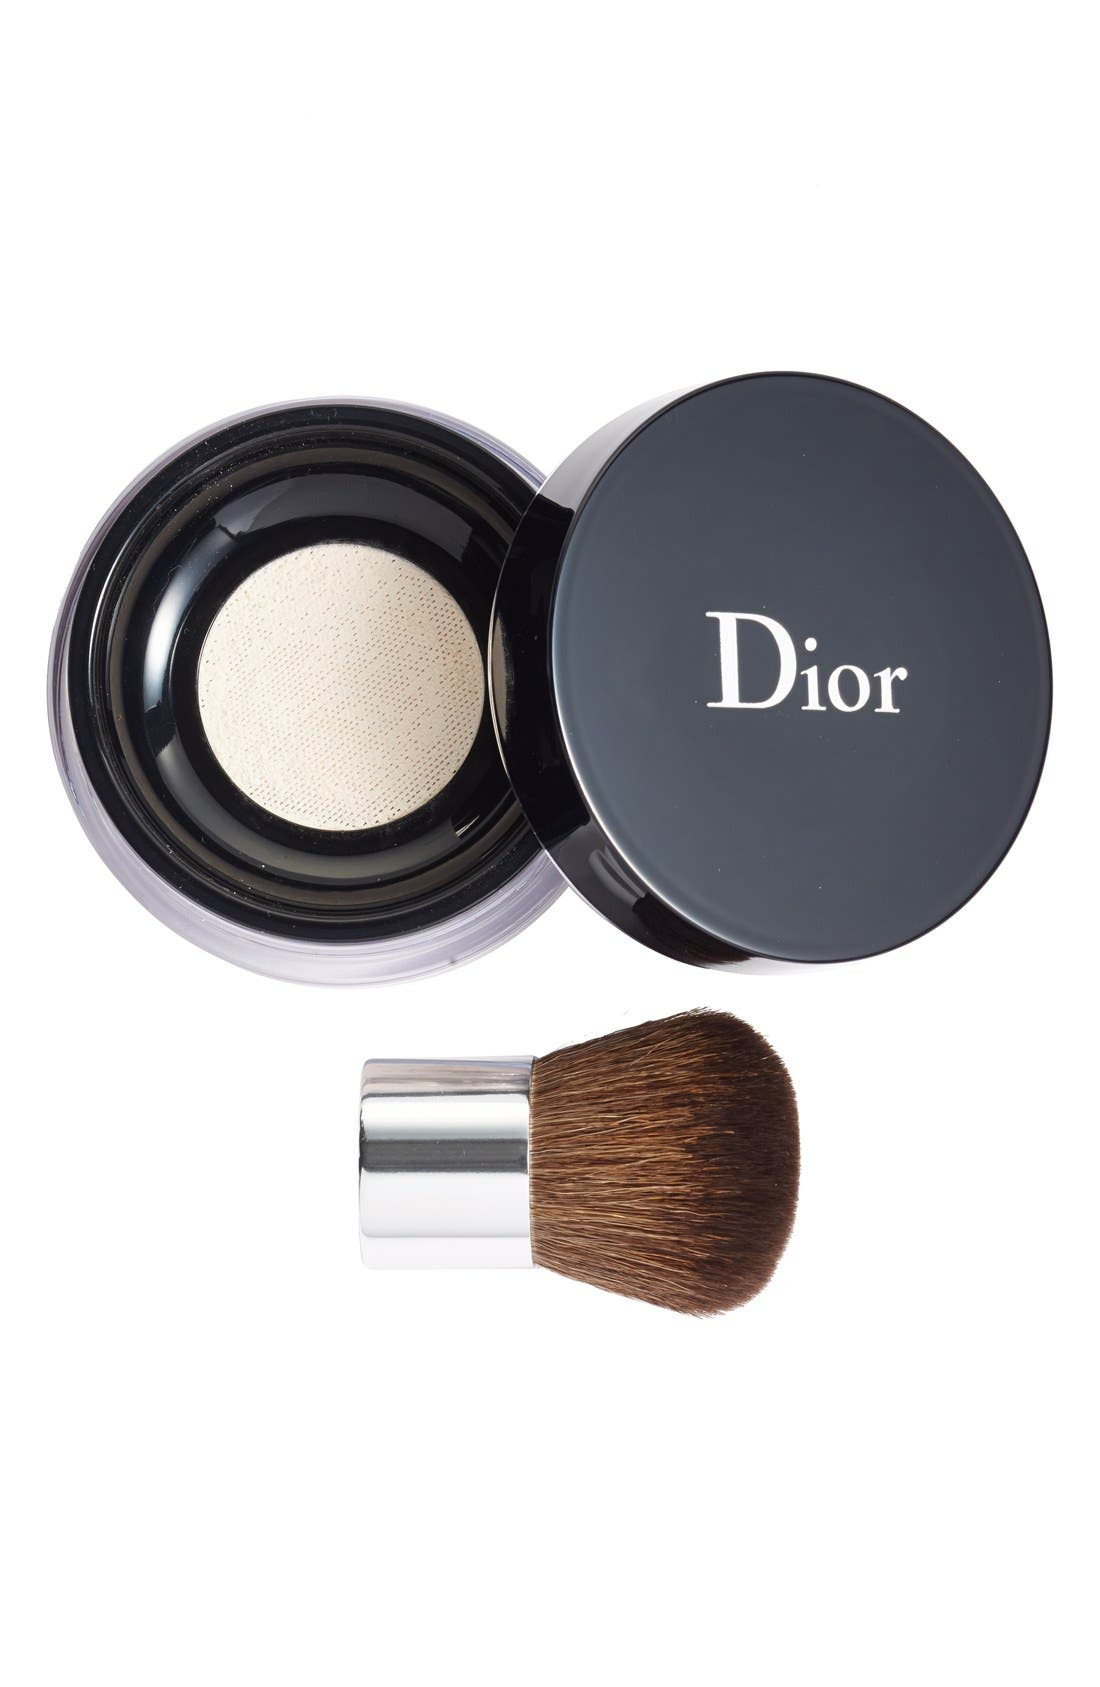 Dior Diorskin Forever & Ever Control Extreme Perfection Matte Finish Invisible Loose Setting Powder